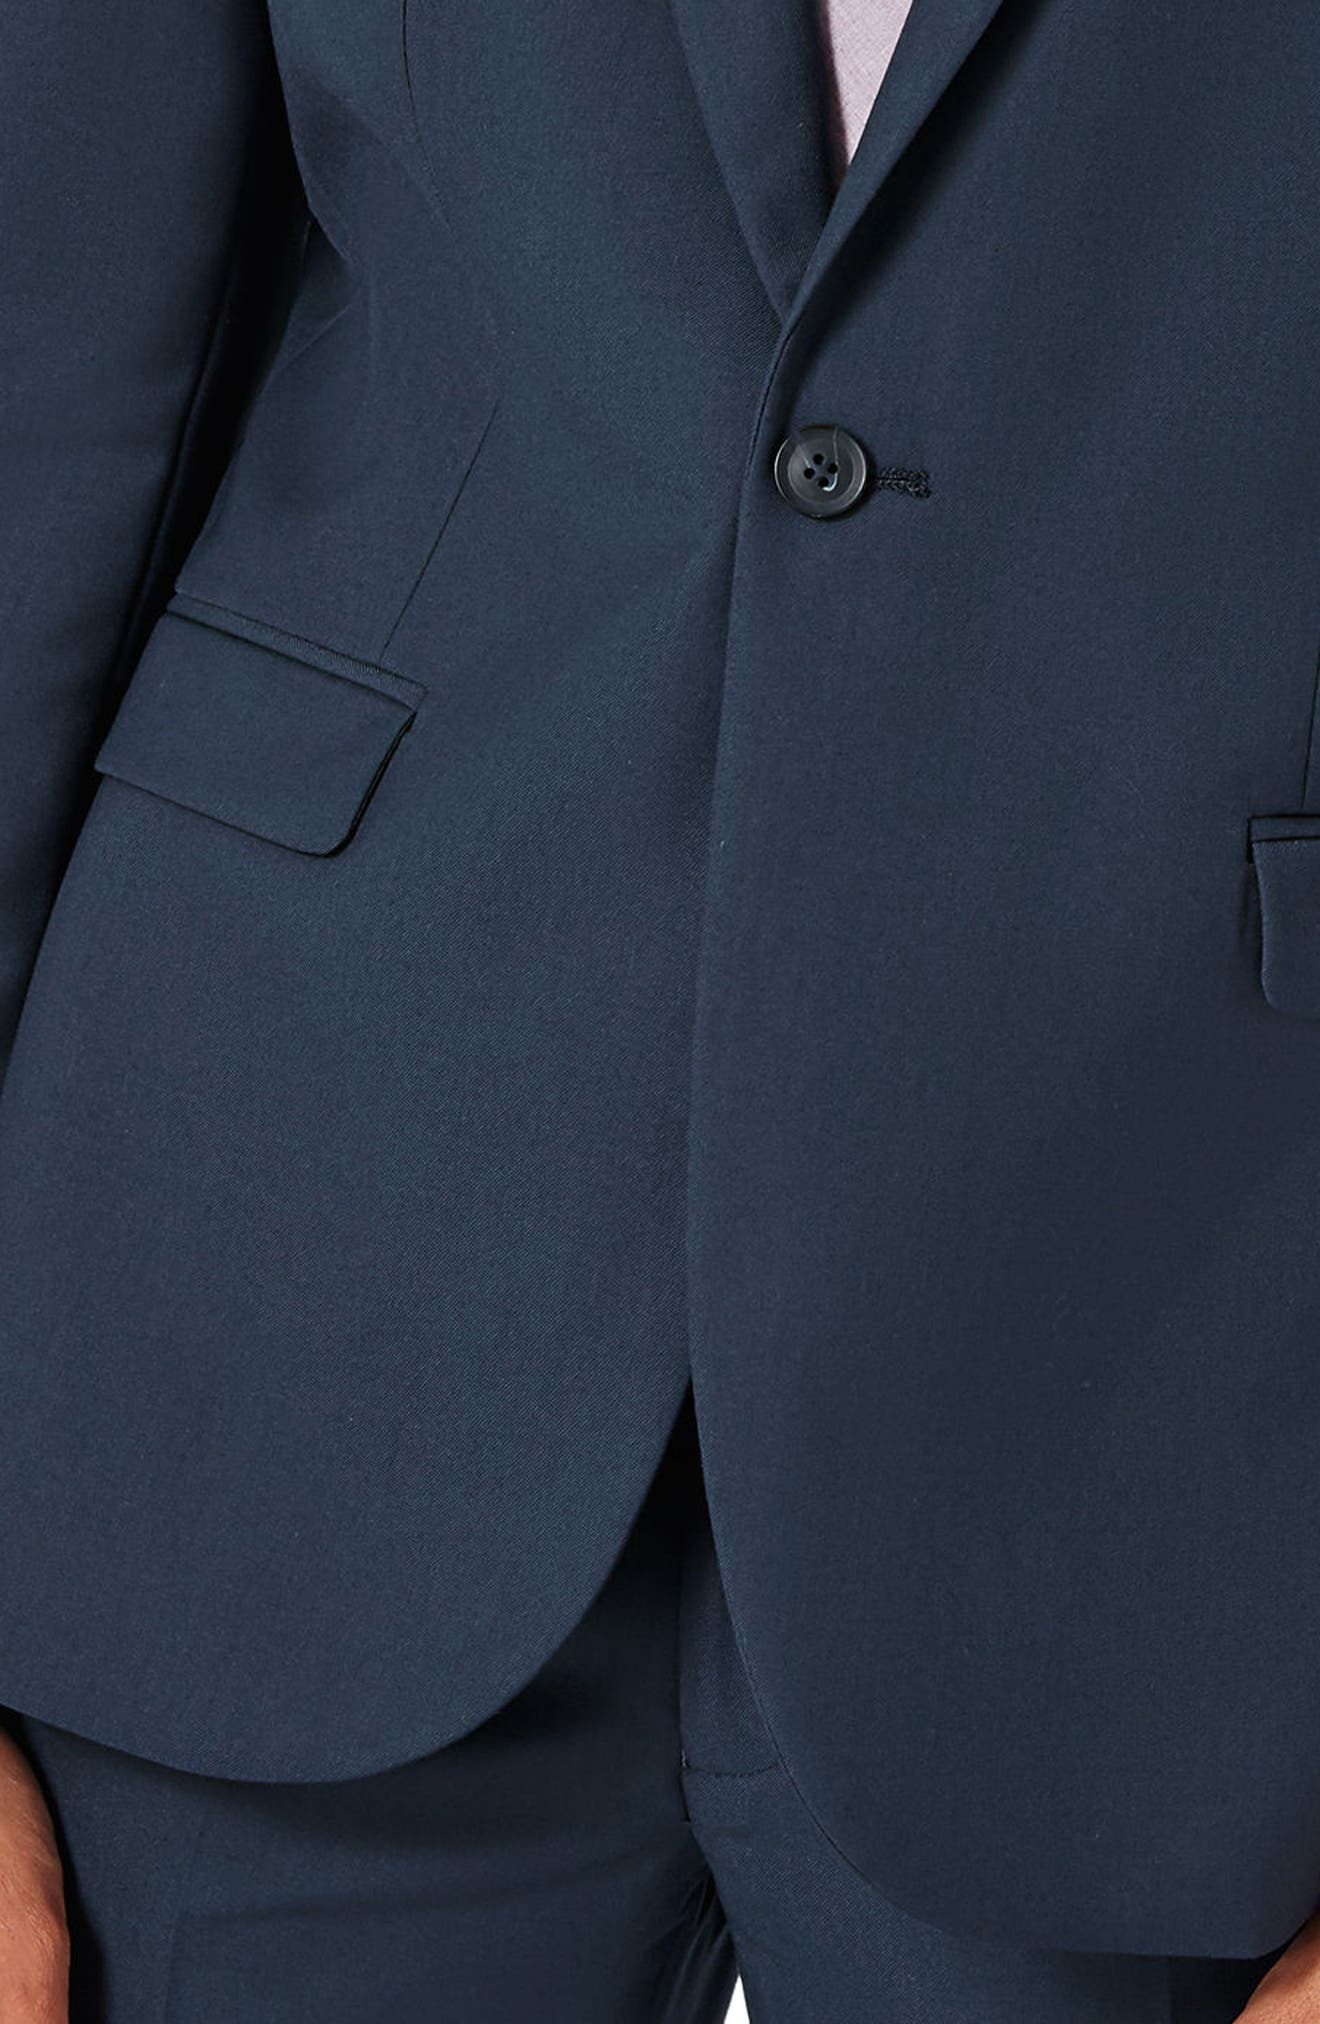 Skinny Fit Suit Jacket,                             Alternate thumbnail 3, color,                             420